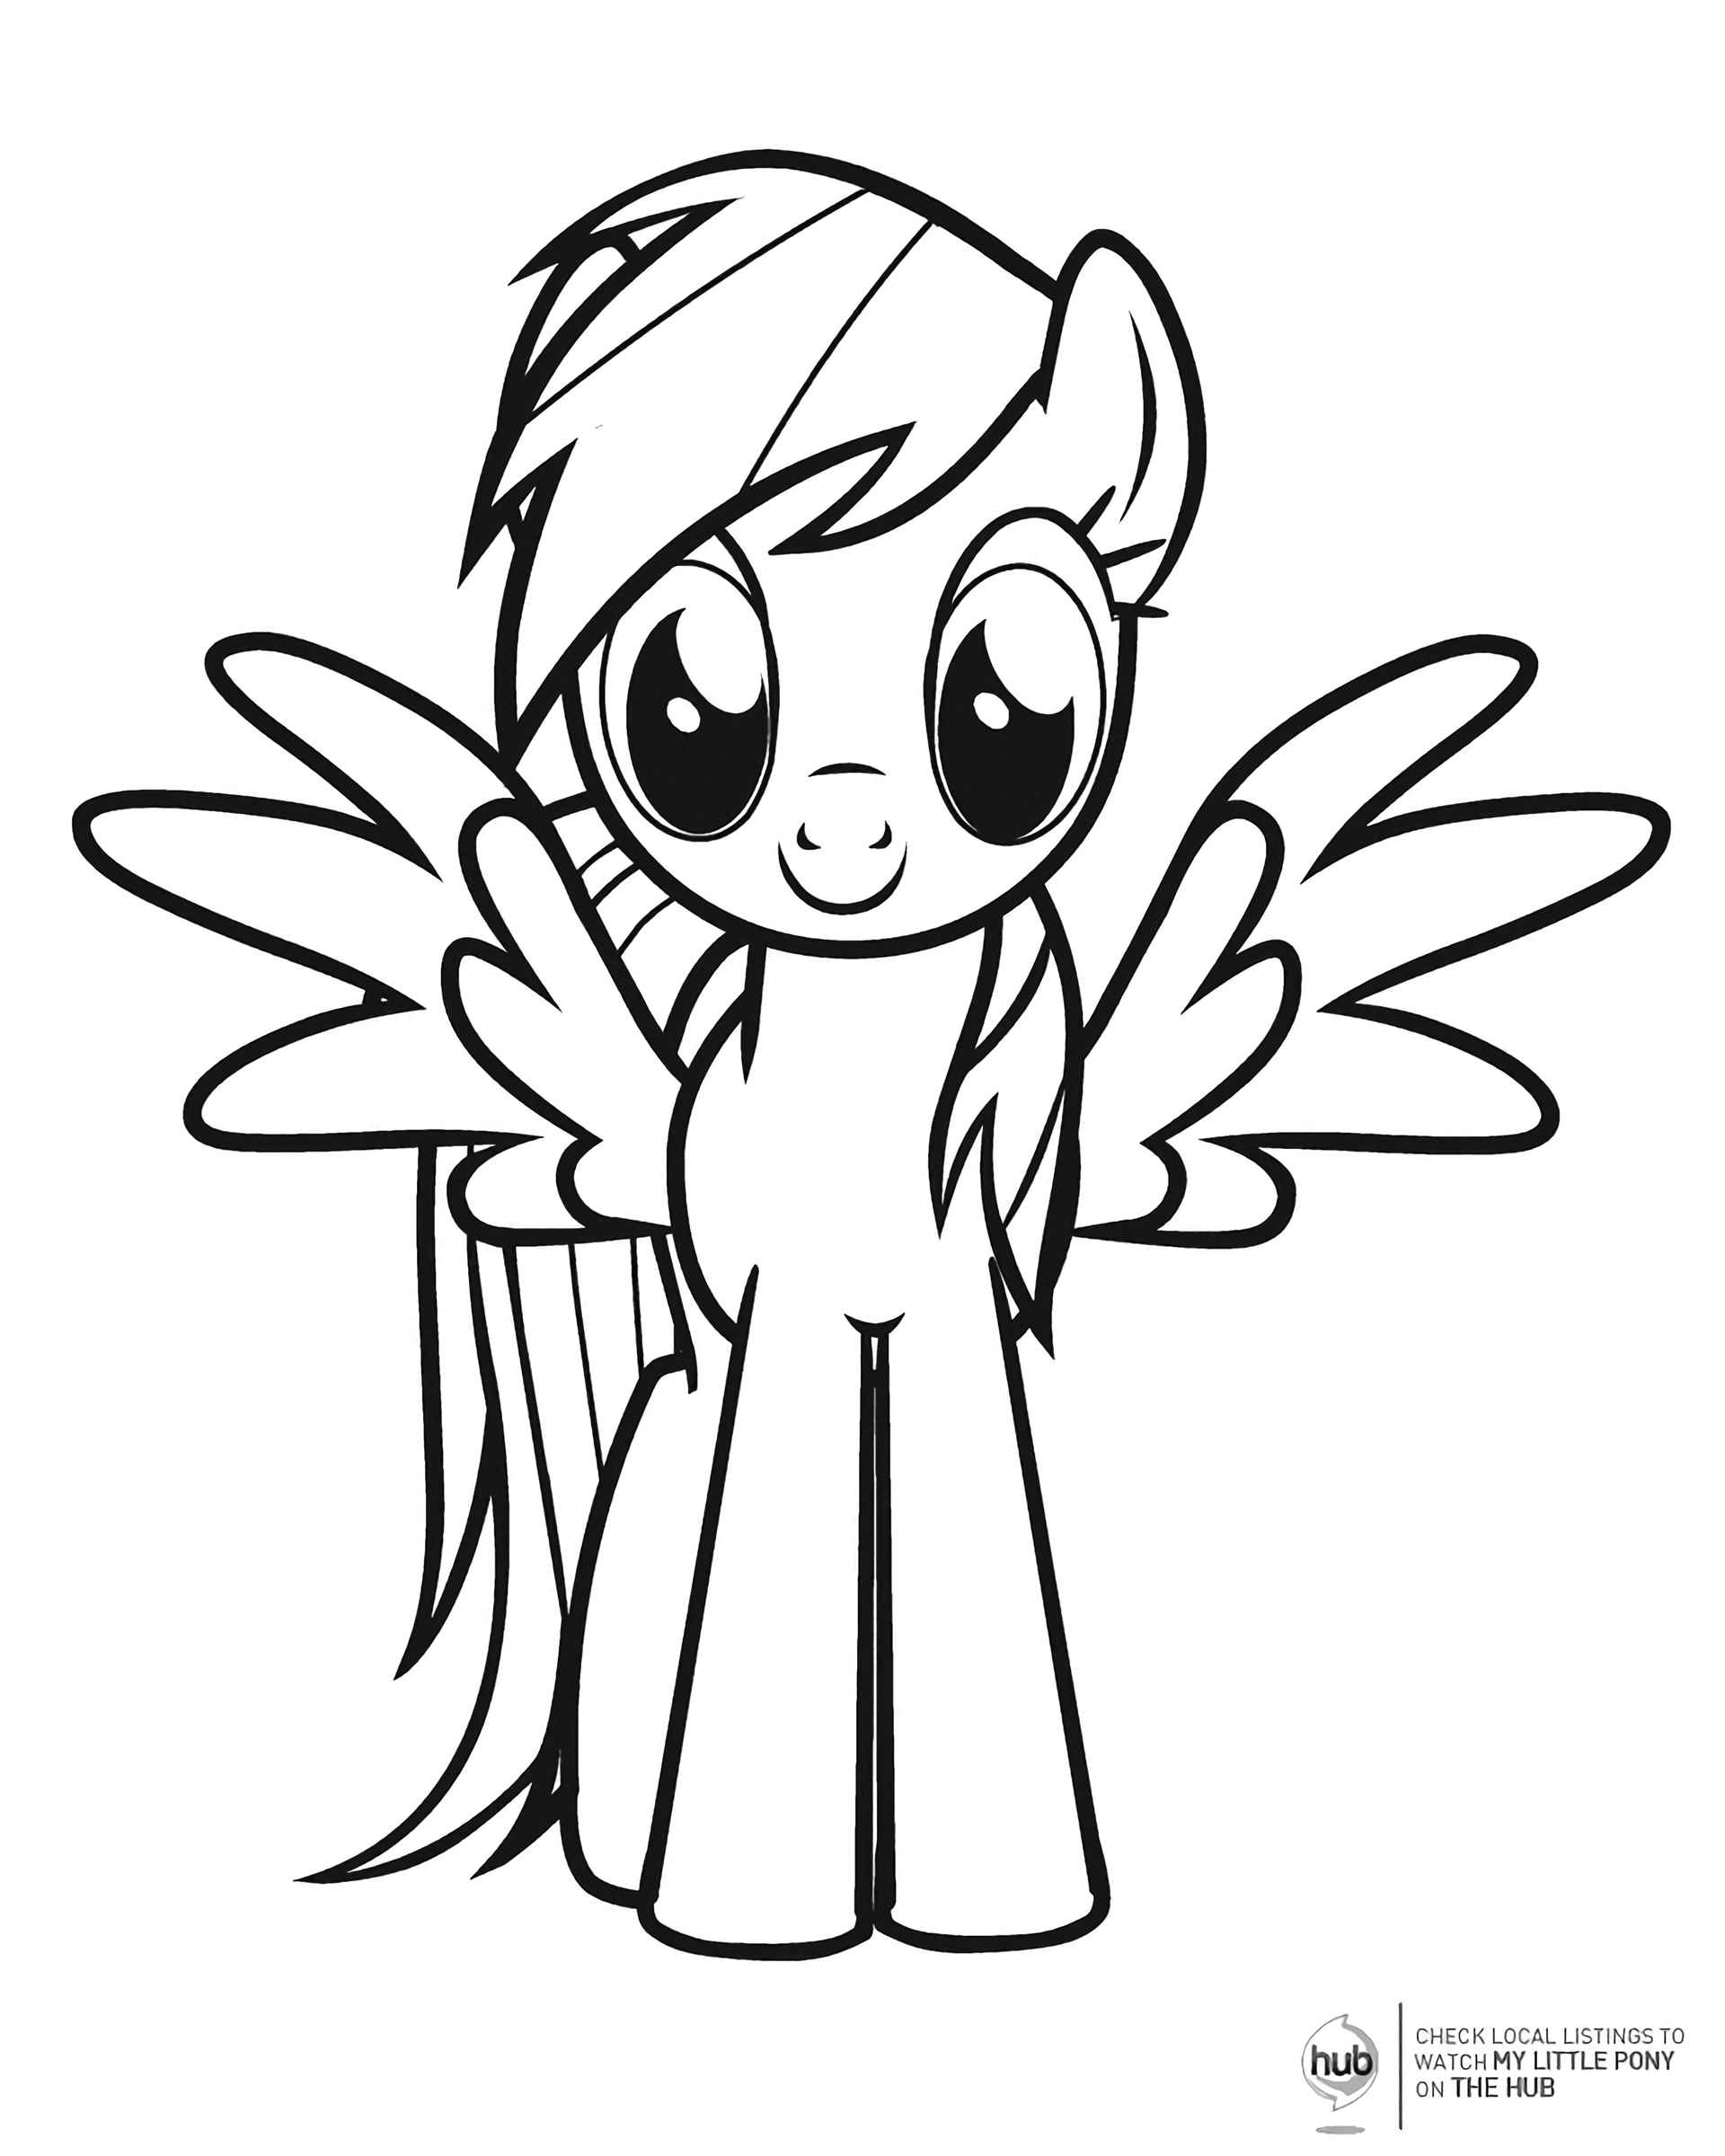 Coloring Page Rainbowdesh Spread Her Wings